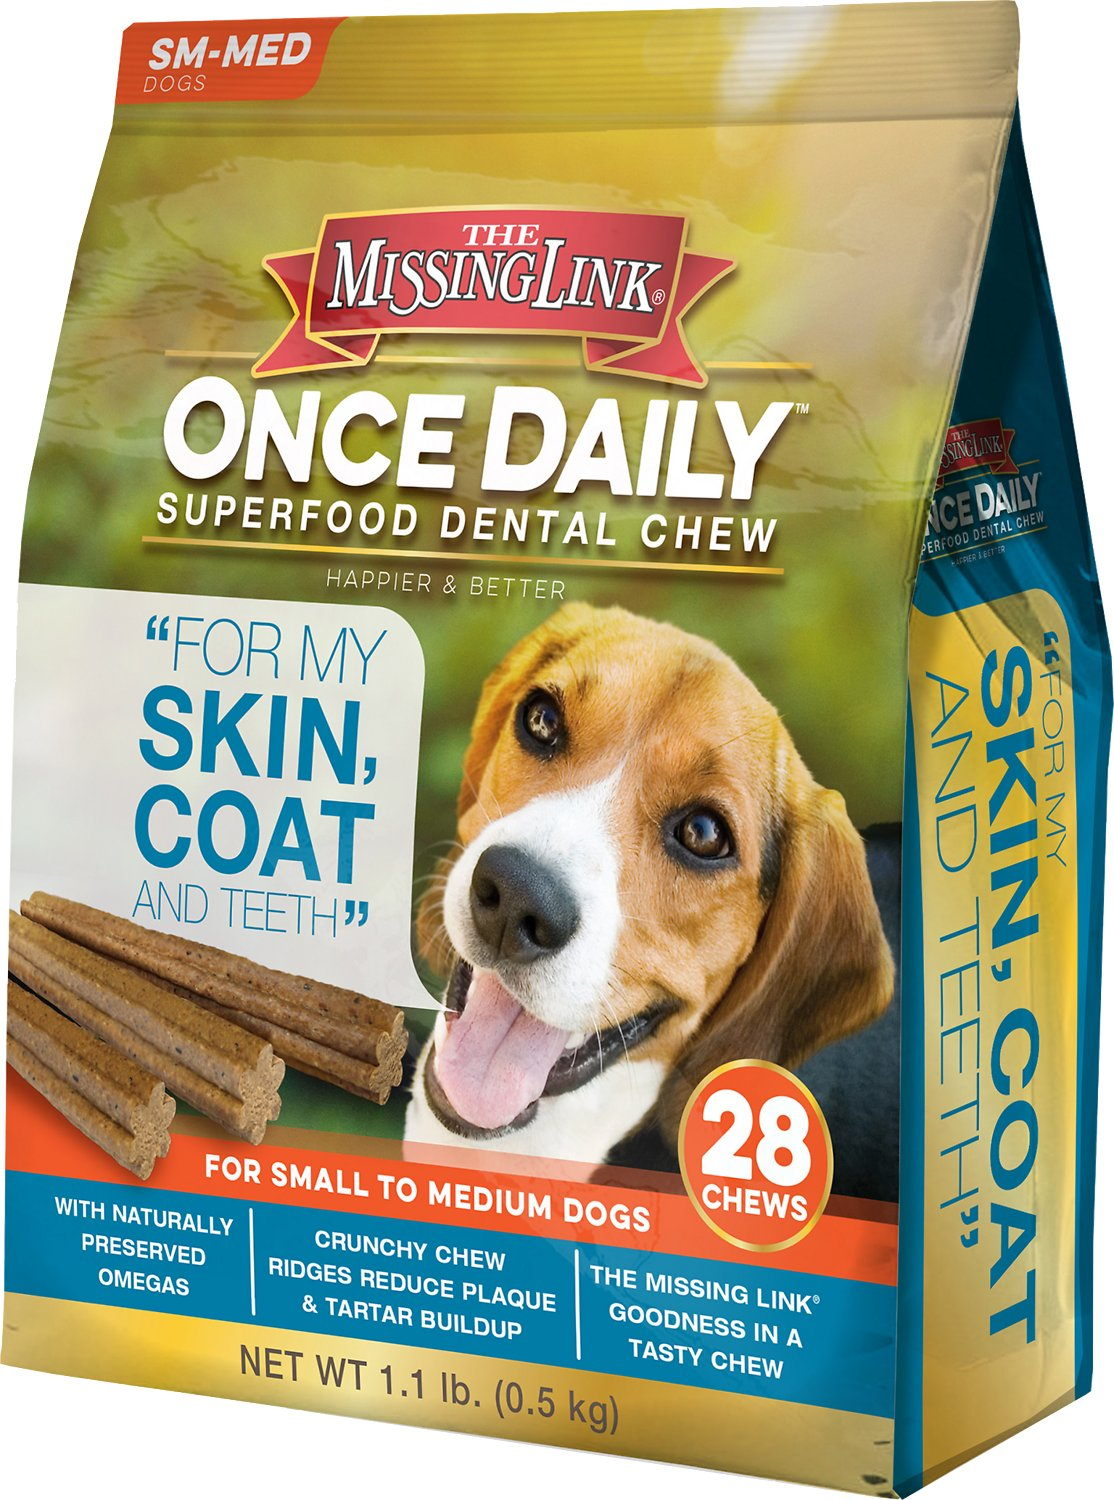 Especial Dogs My Skin Coat Dental Dog Chew Dental Chews Dogs Safe Allergies Dental Chews Video Missing Link Once Daily bark post Dental Chews For Dogs